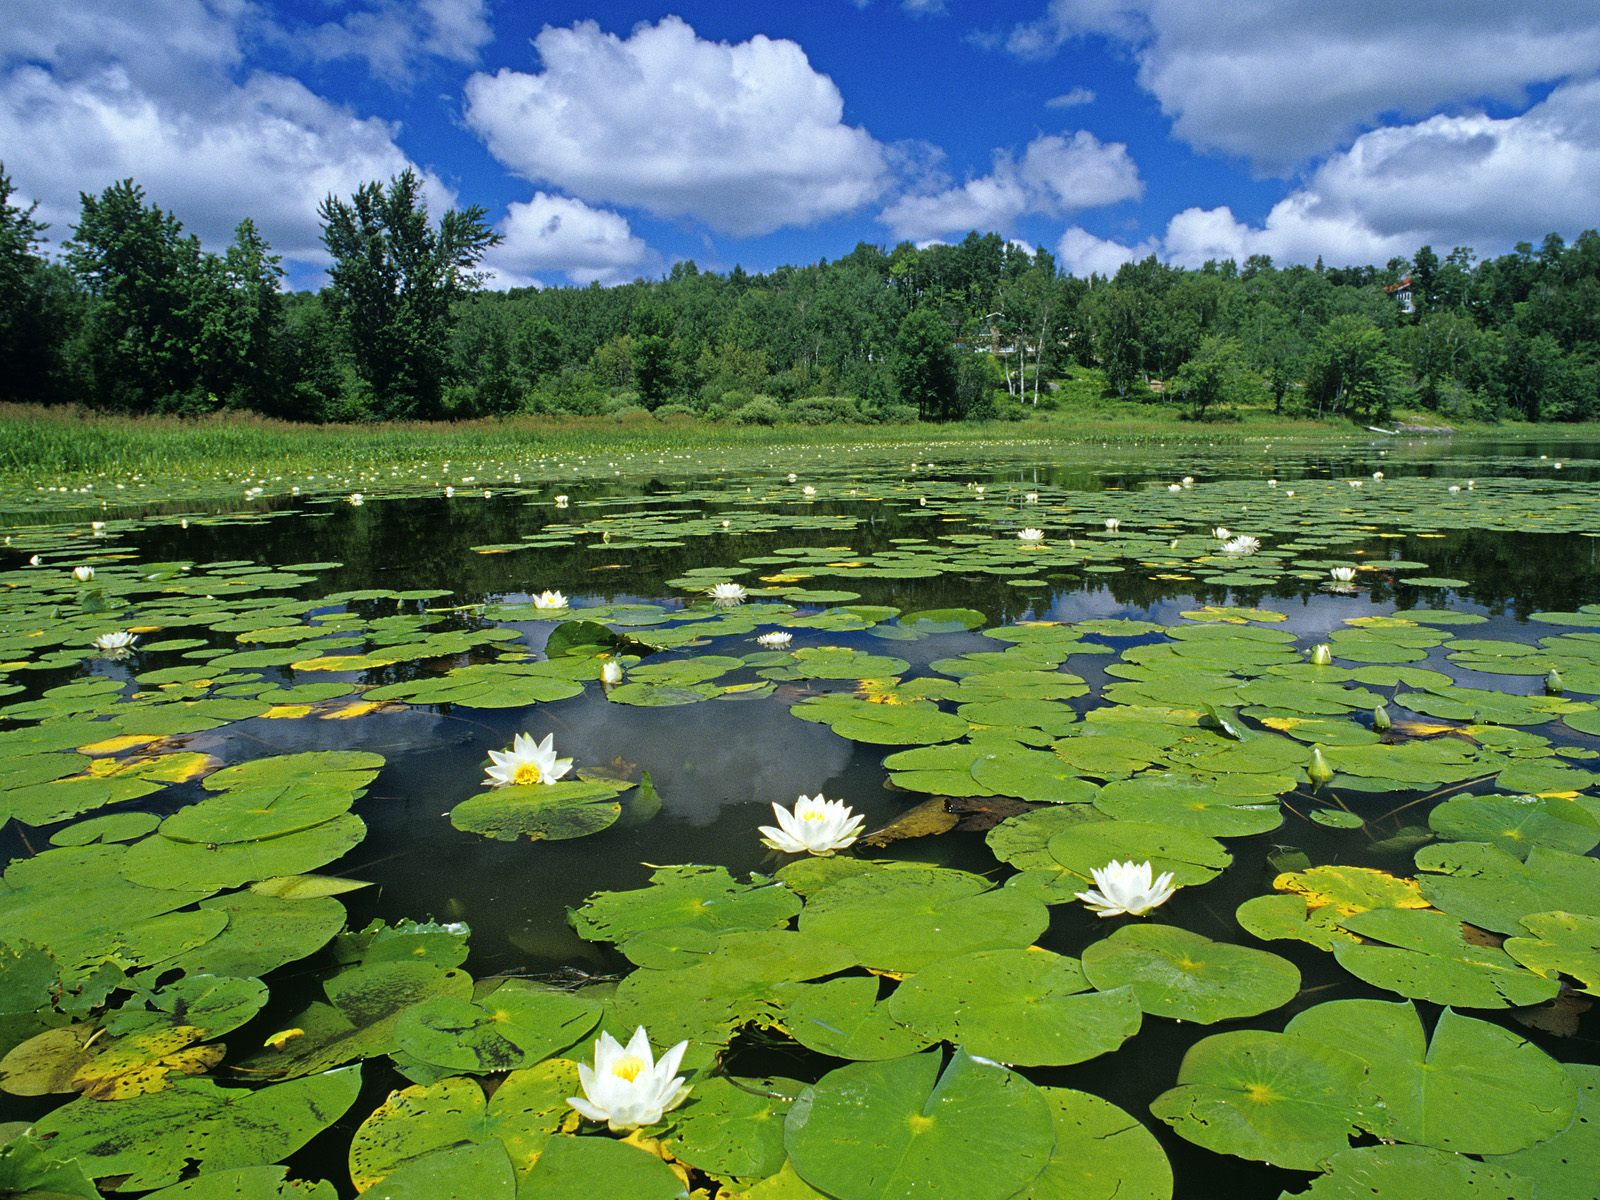 Water lillies covering a pond